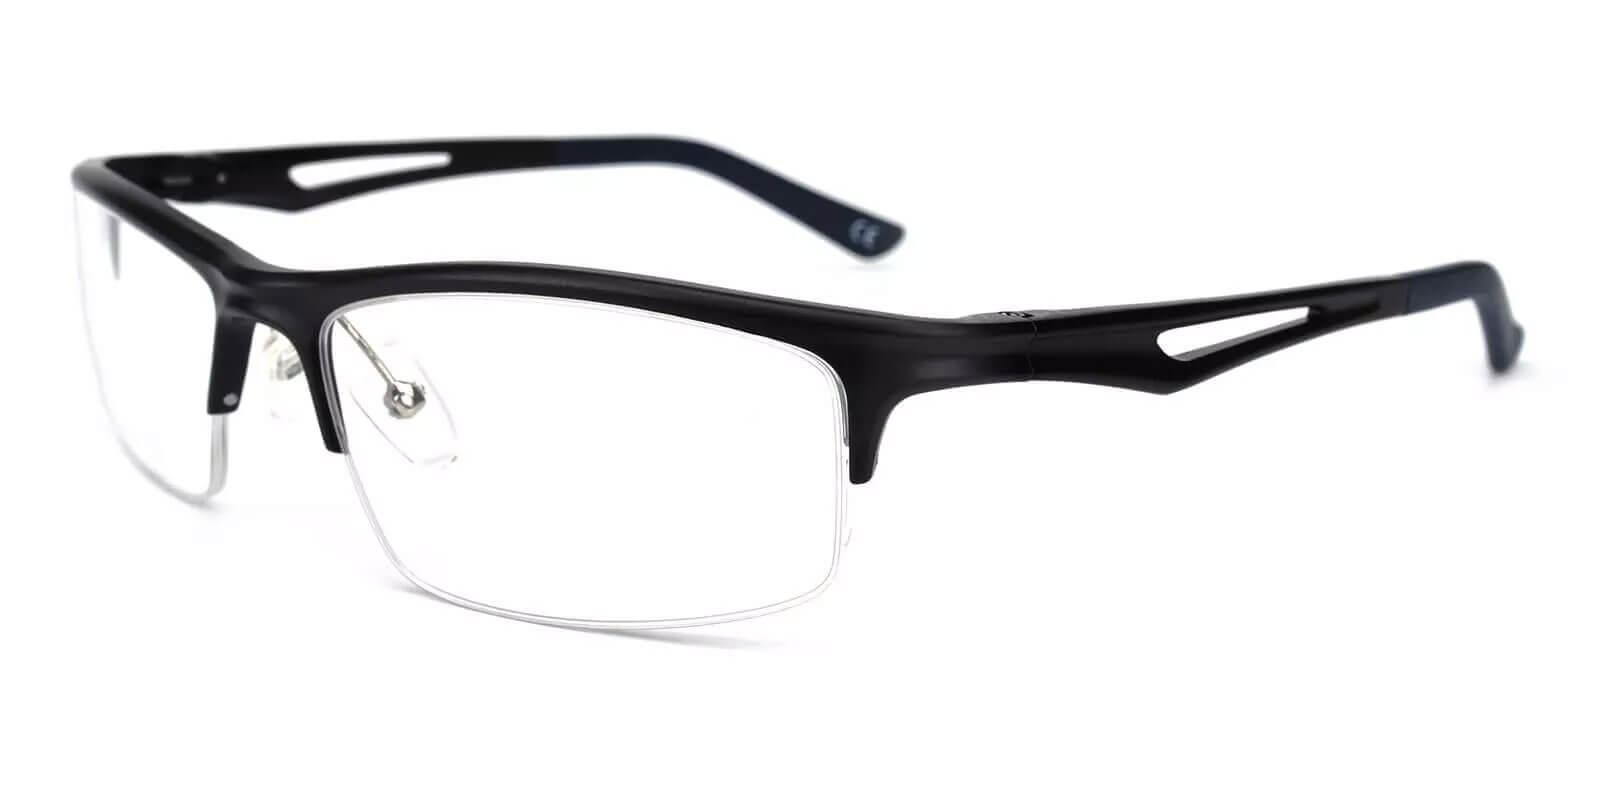 Mariner Black Metal Eyeglasses , NosePads , SpringHinges Frames from ABBE Glasses